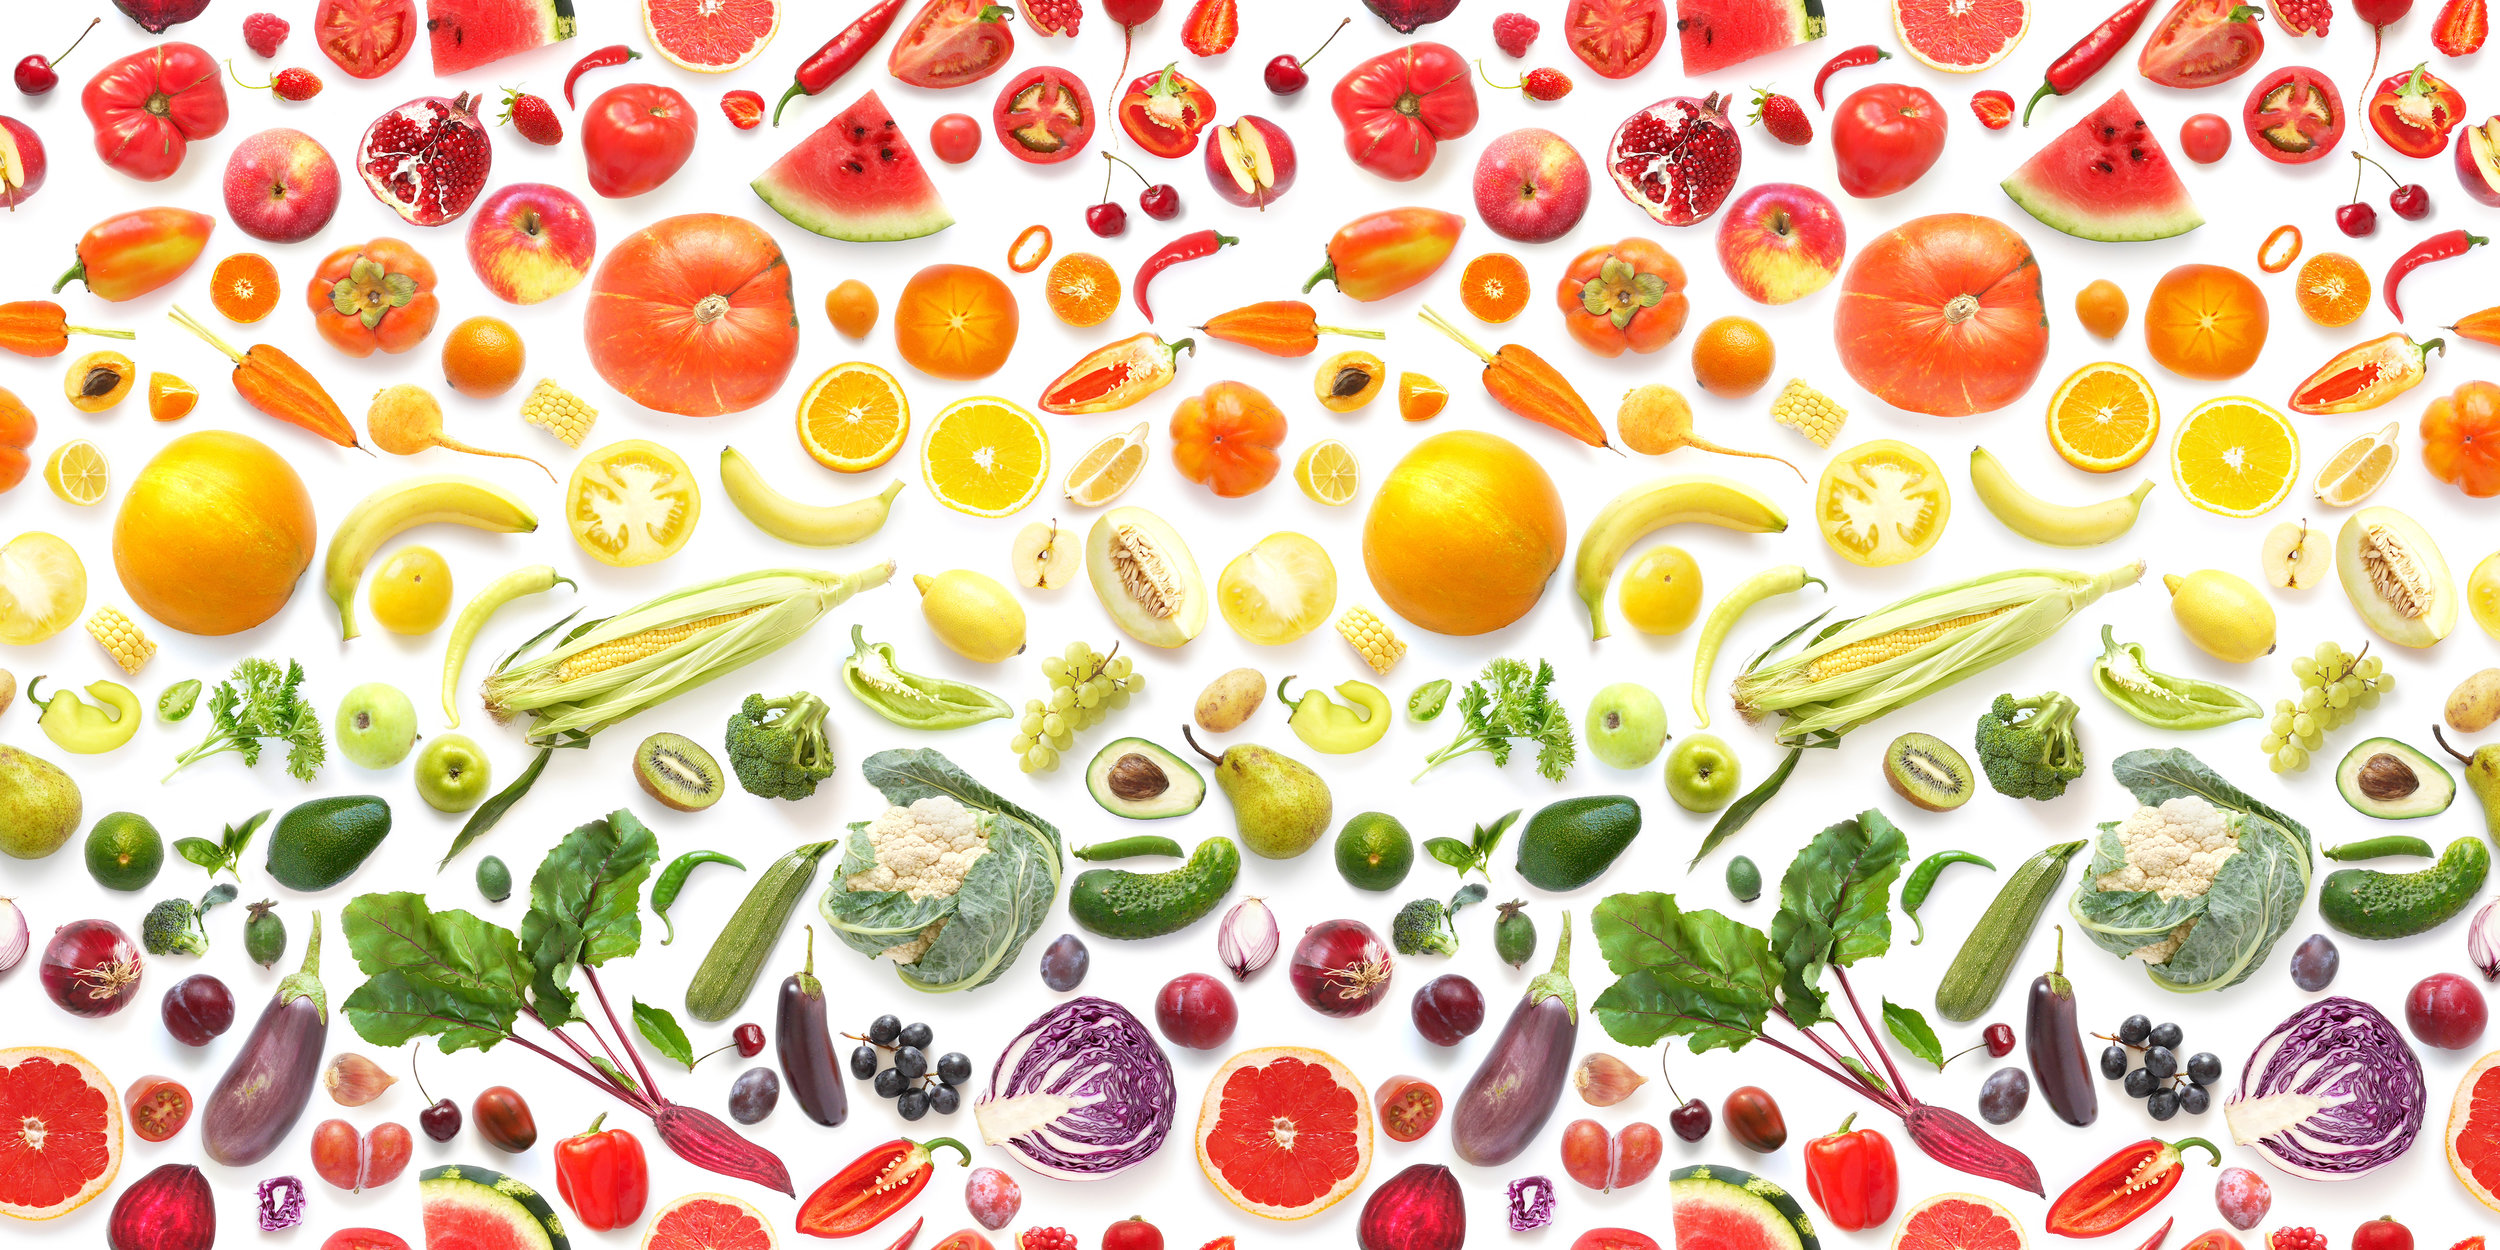 Photo of all different color veggies arranged in a rainbow.